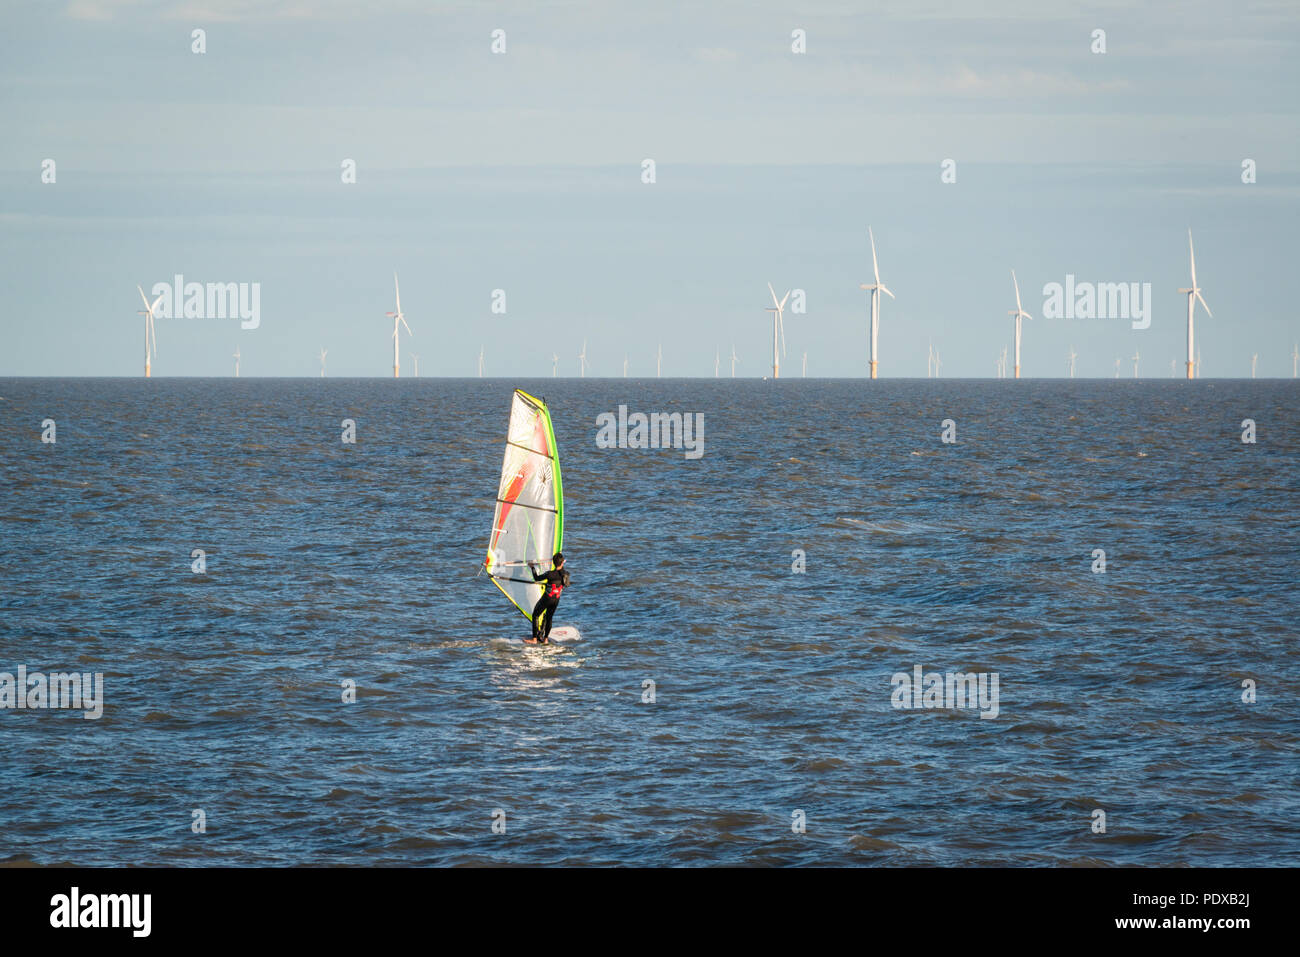 A windsurfer in the water at Clacton on Sea, Essex, UK - Stock Image